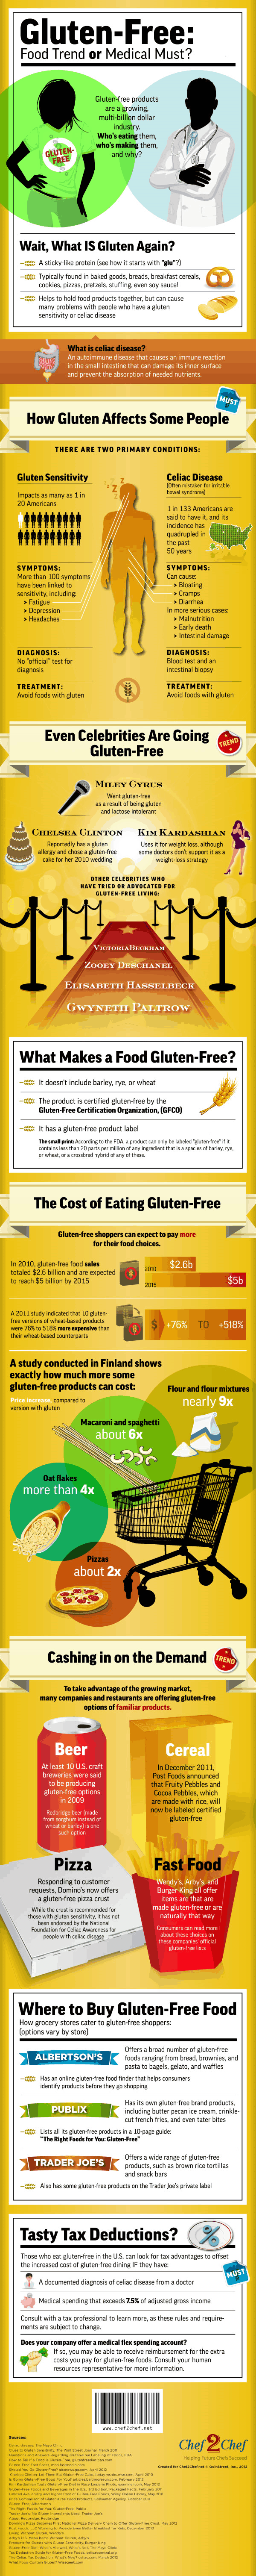 Gluten-Free: Food Trend or Medical Must?